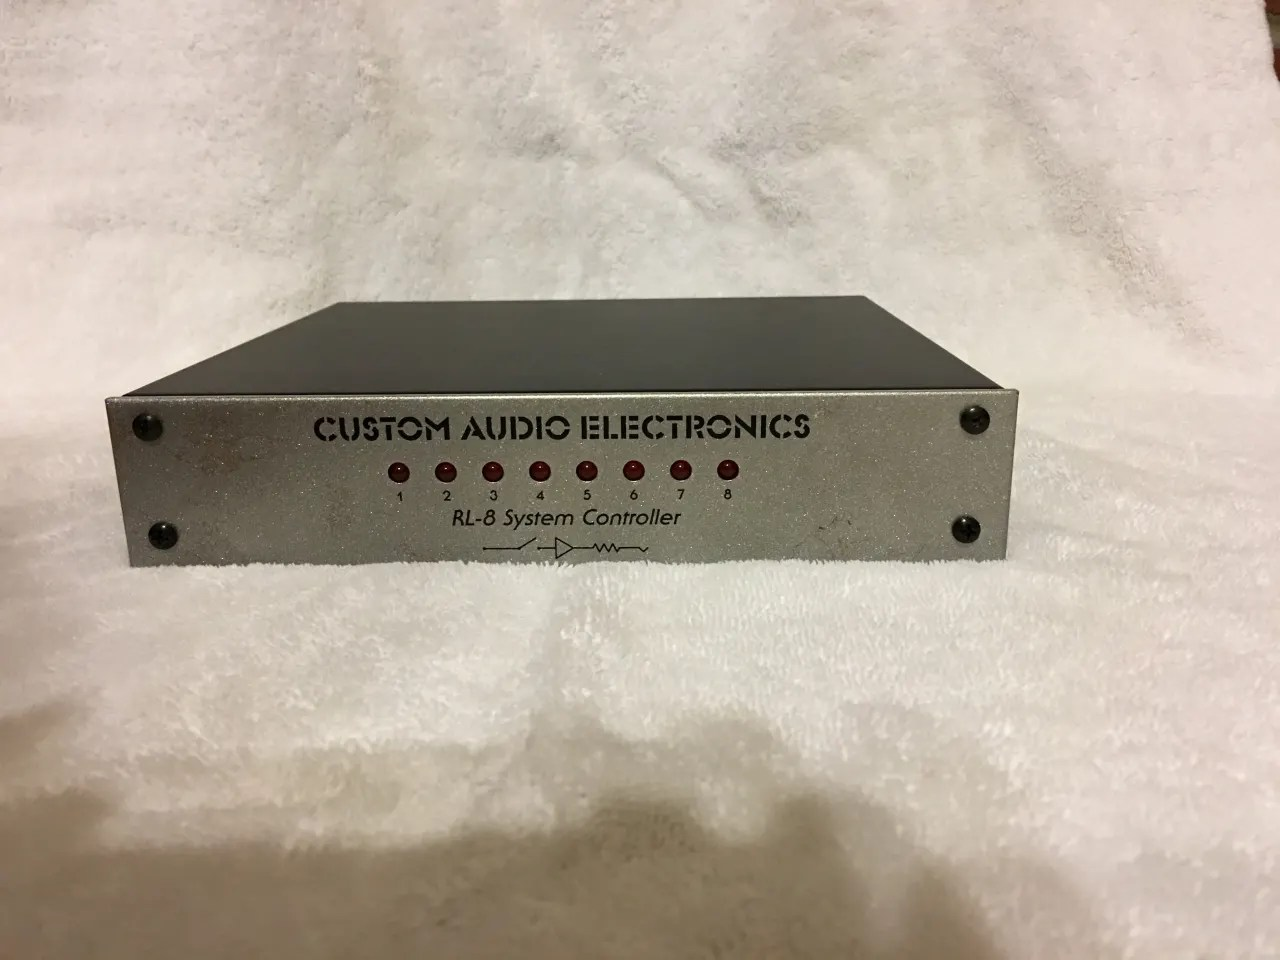 Contemporary Custom Audio Electronics Cae Midi Relay Switch Reverb R L Electronics Shipping R L Electronics Hours dpreview R  L Electronics